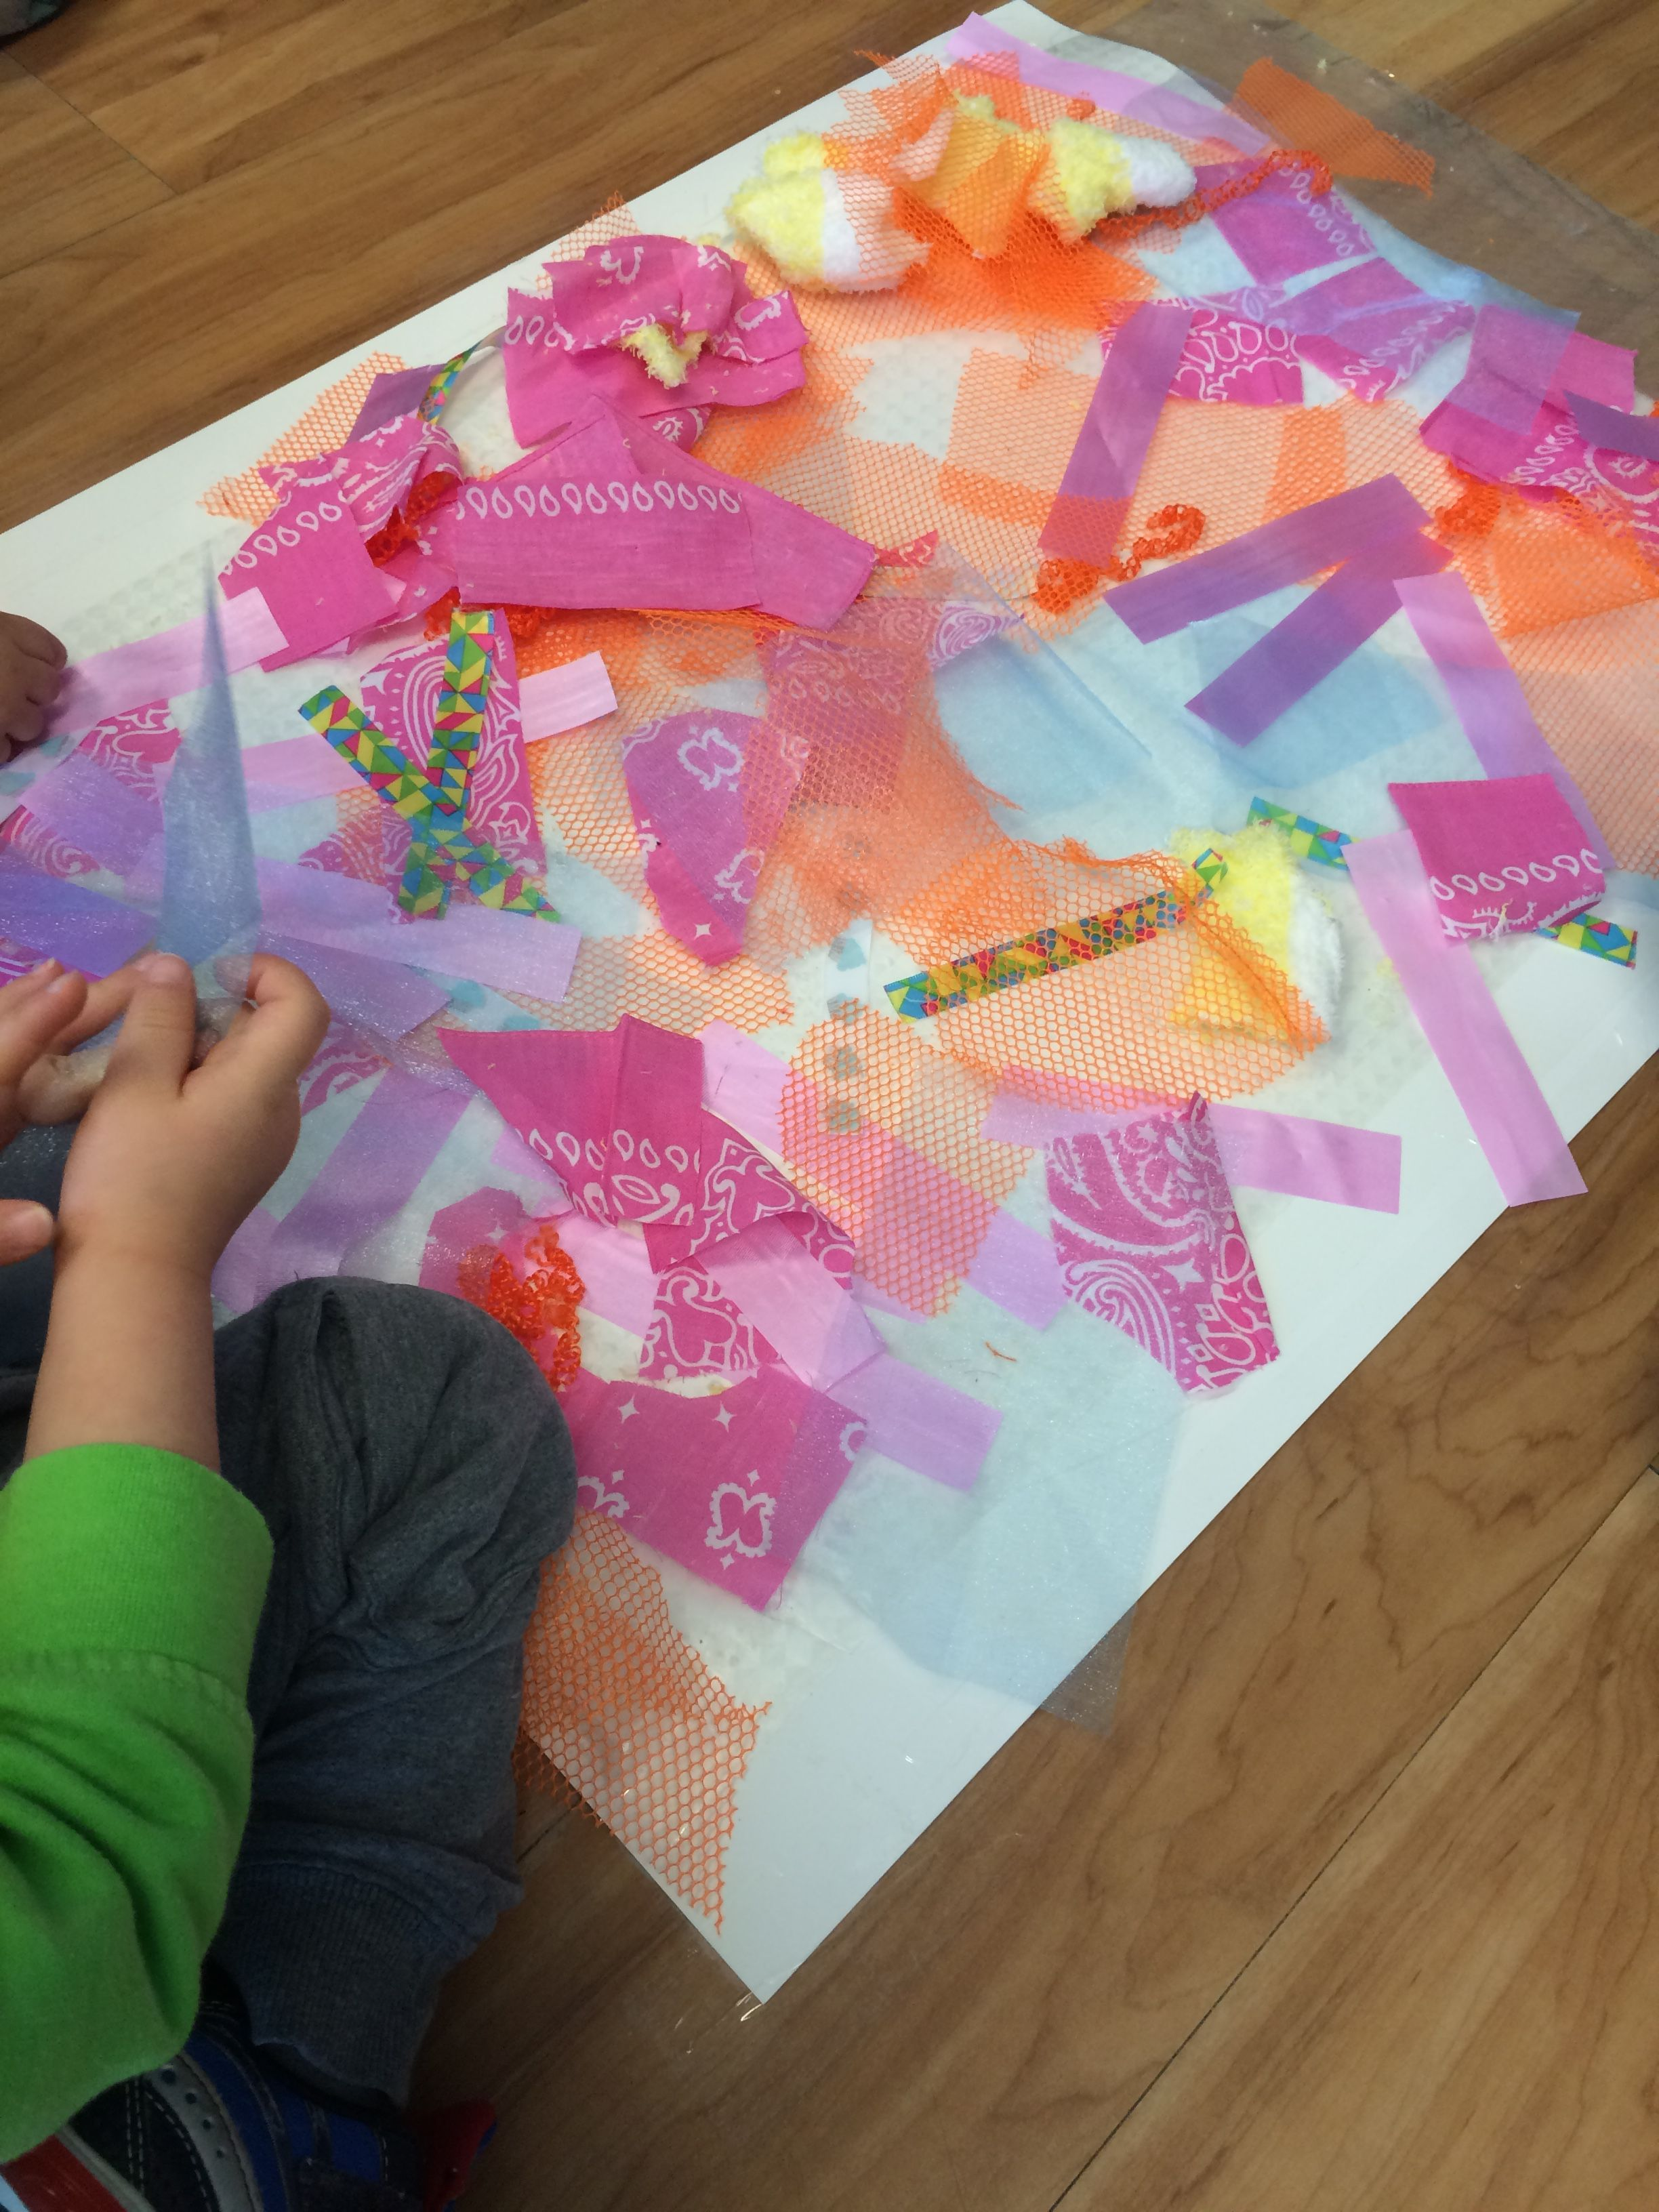 Adhesive paper with materials to create a collage (toddler).